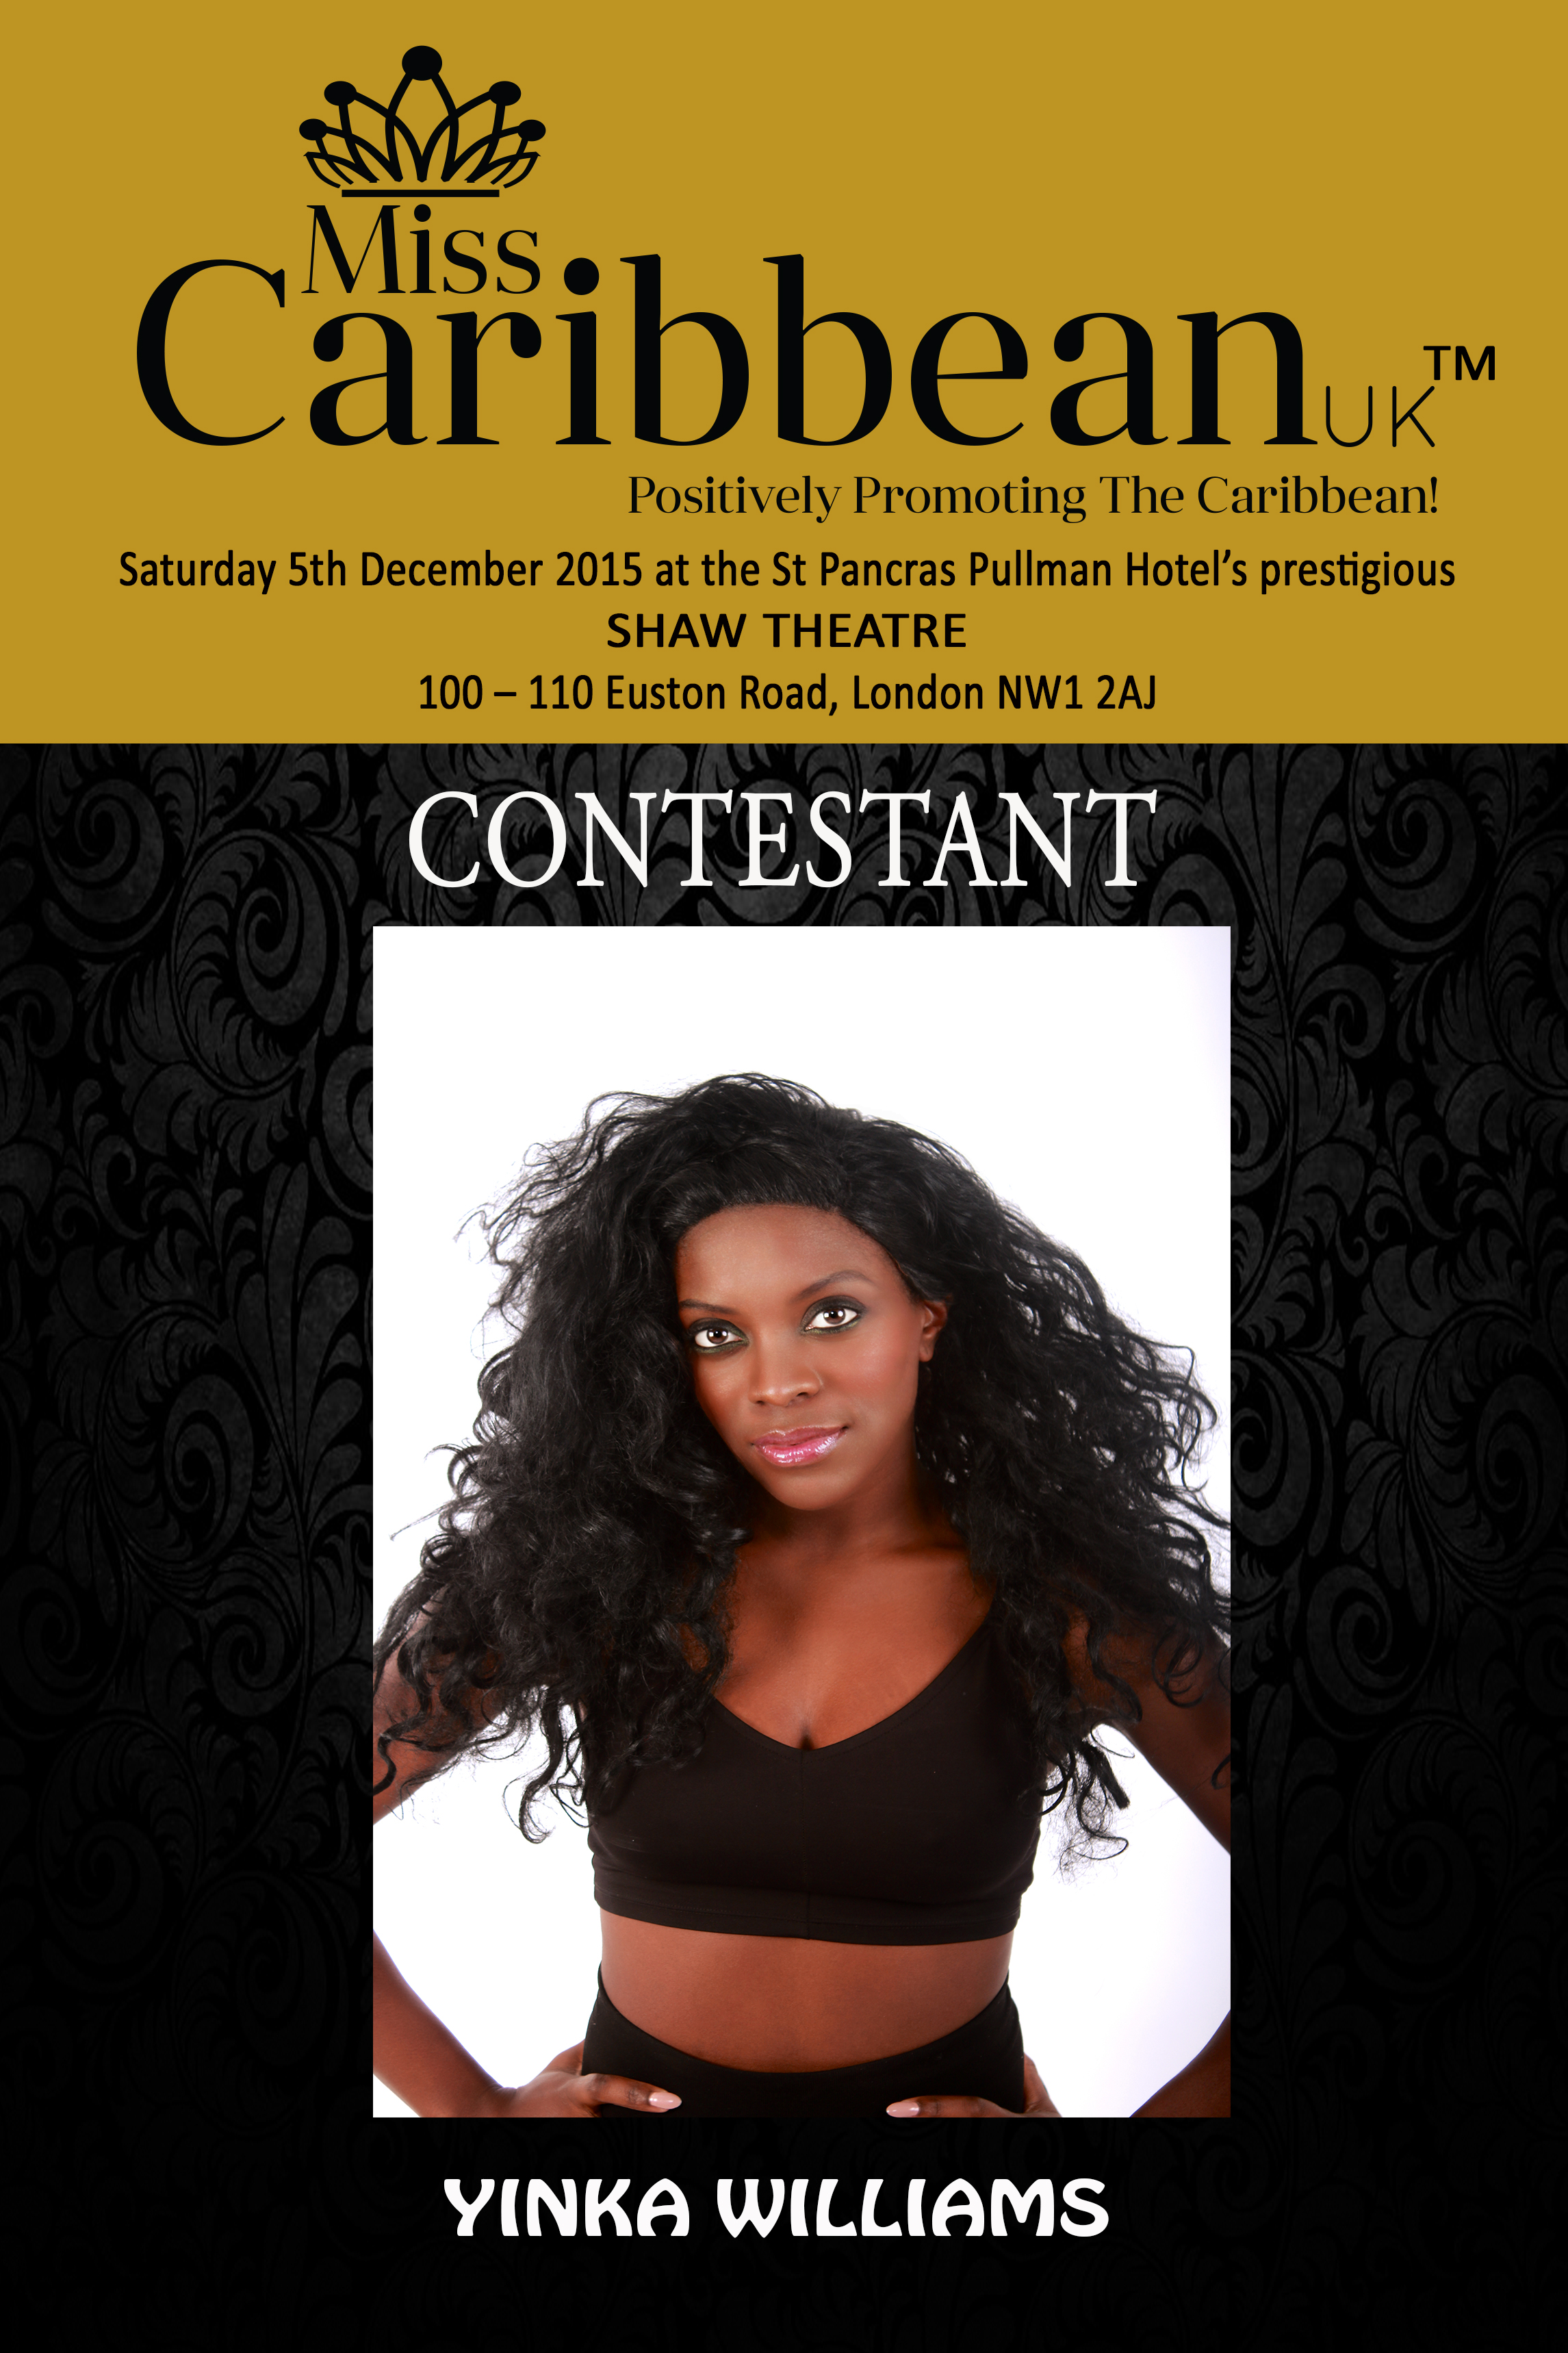 CONTESTANT - Yinka Williams.